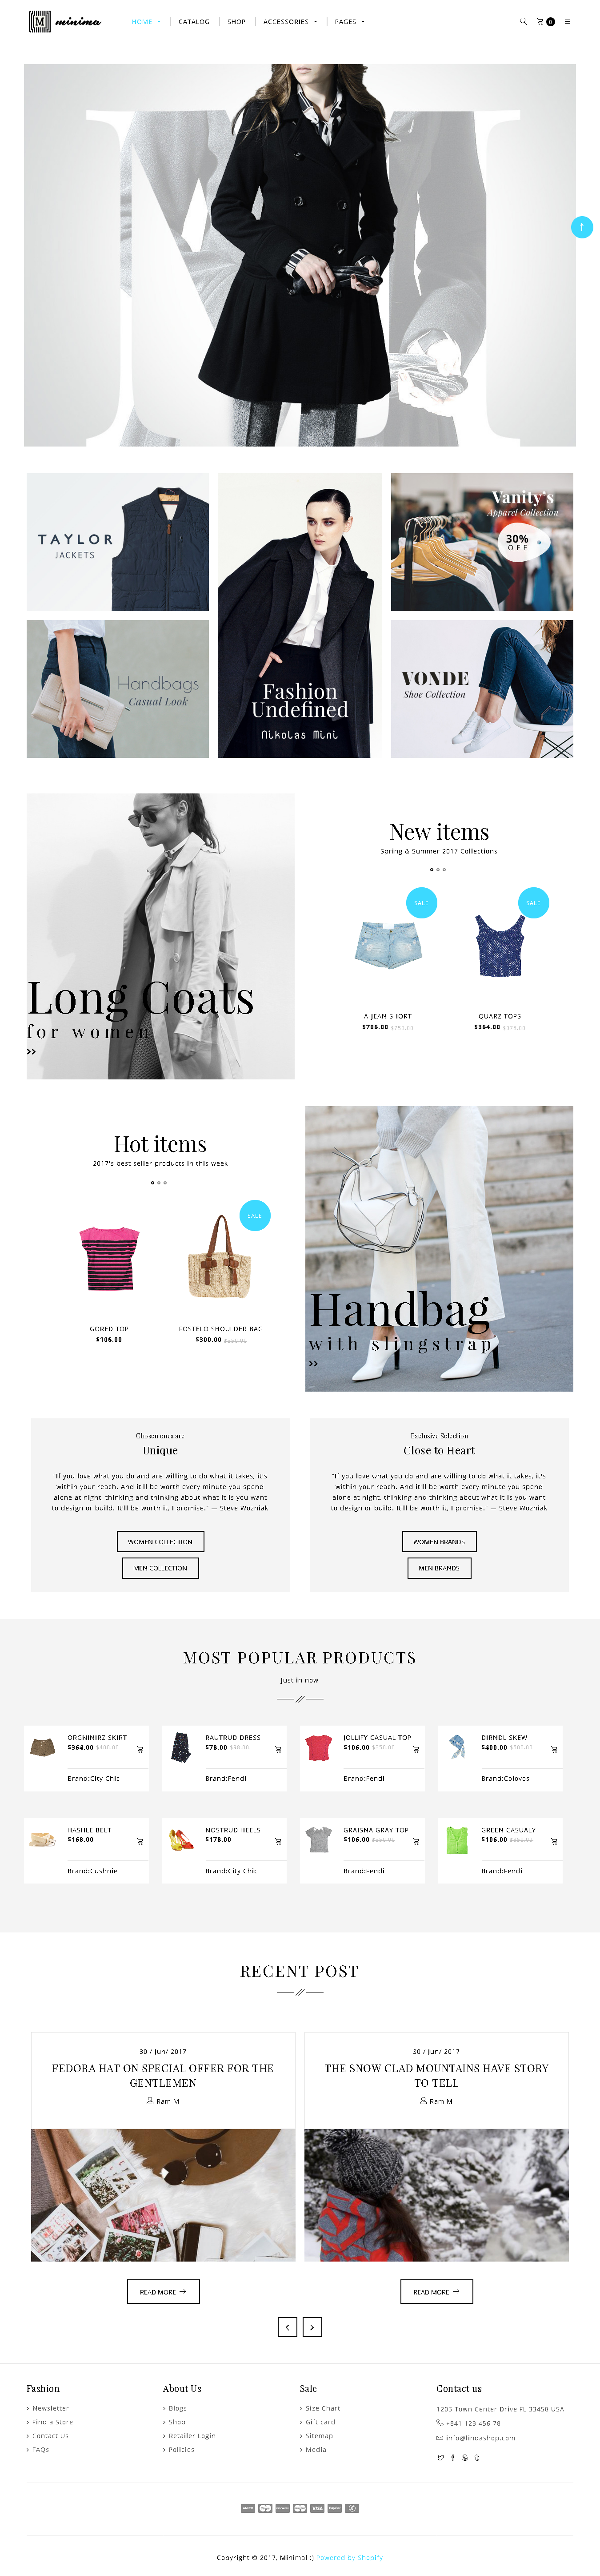 5 Best SHOPIFY Premium Themes Collection for RETAIL Store 2017 -Minima- Shopify Minimal Theme